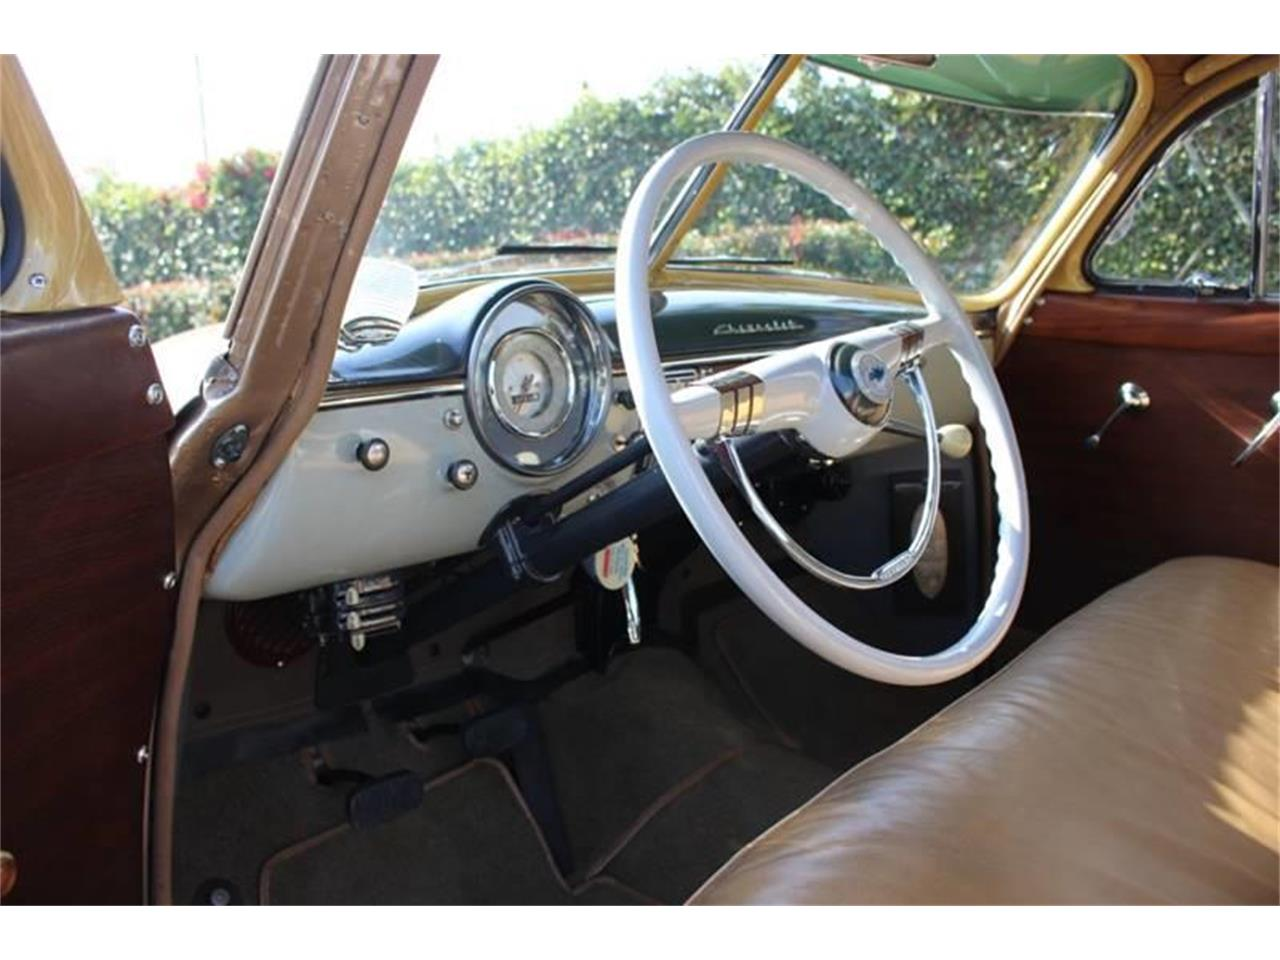 1950 Chevrolet Styleline Deluxe for sale in La Verne, CA – photo 26